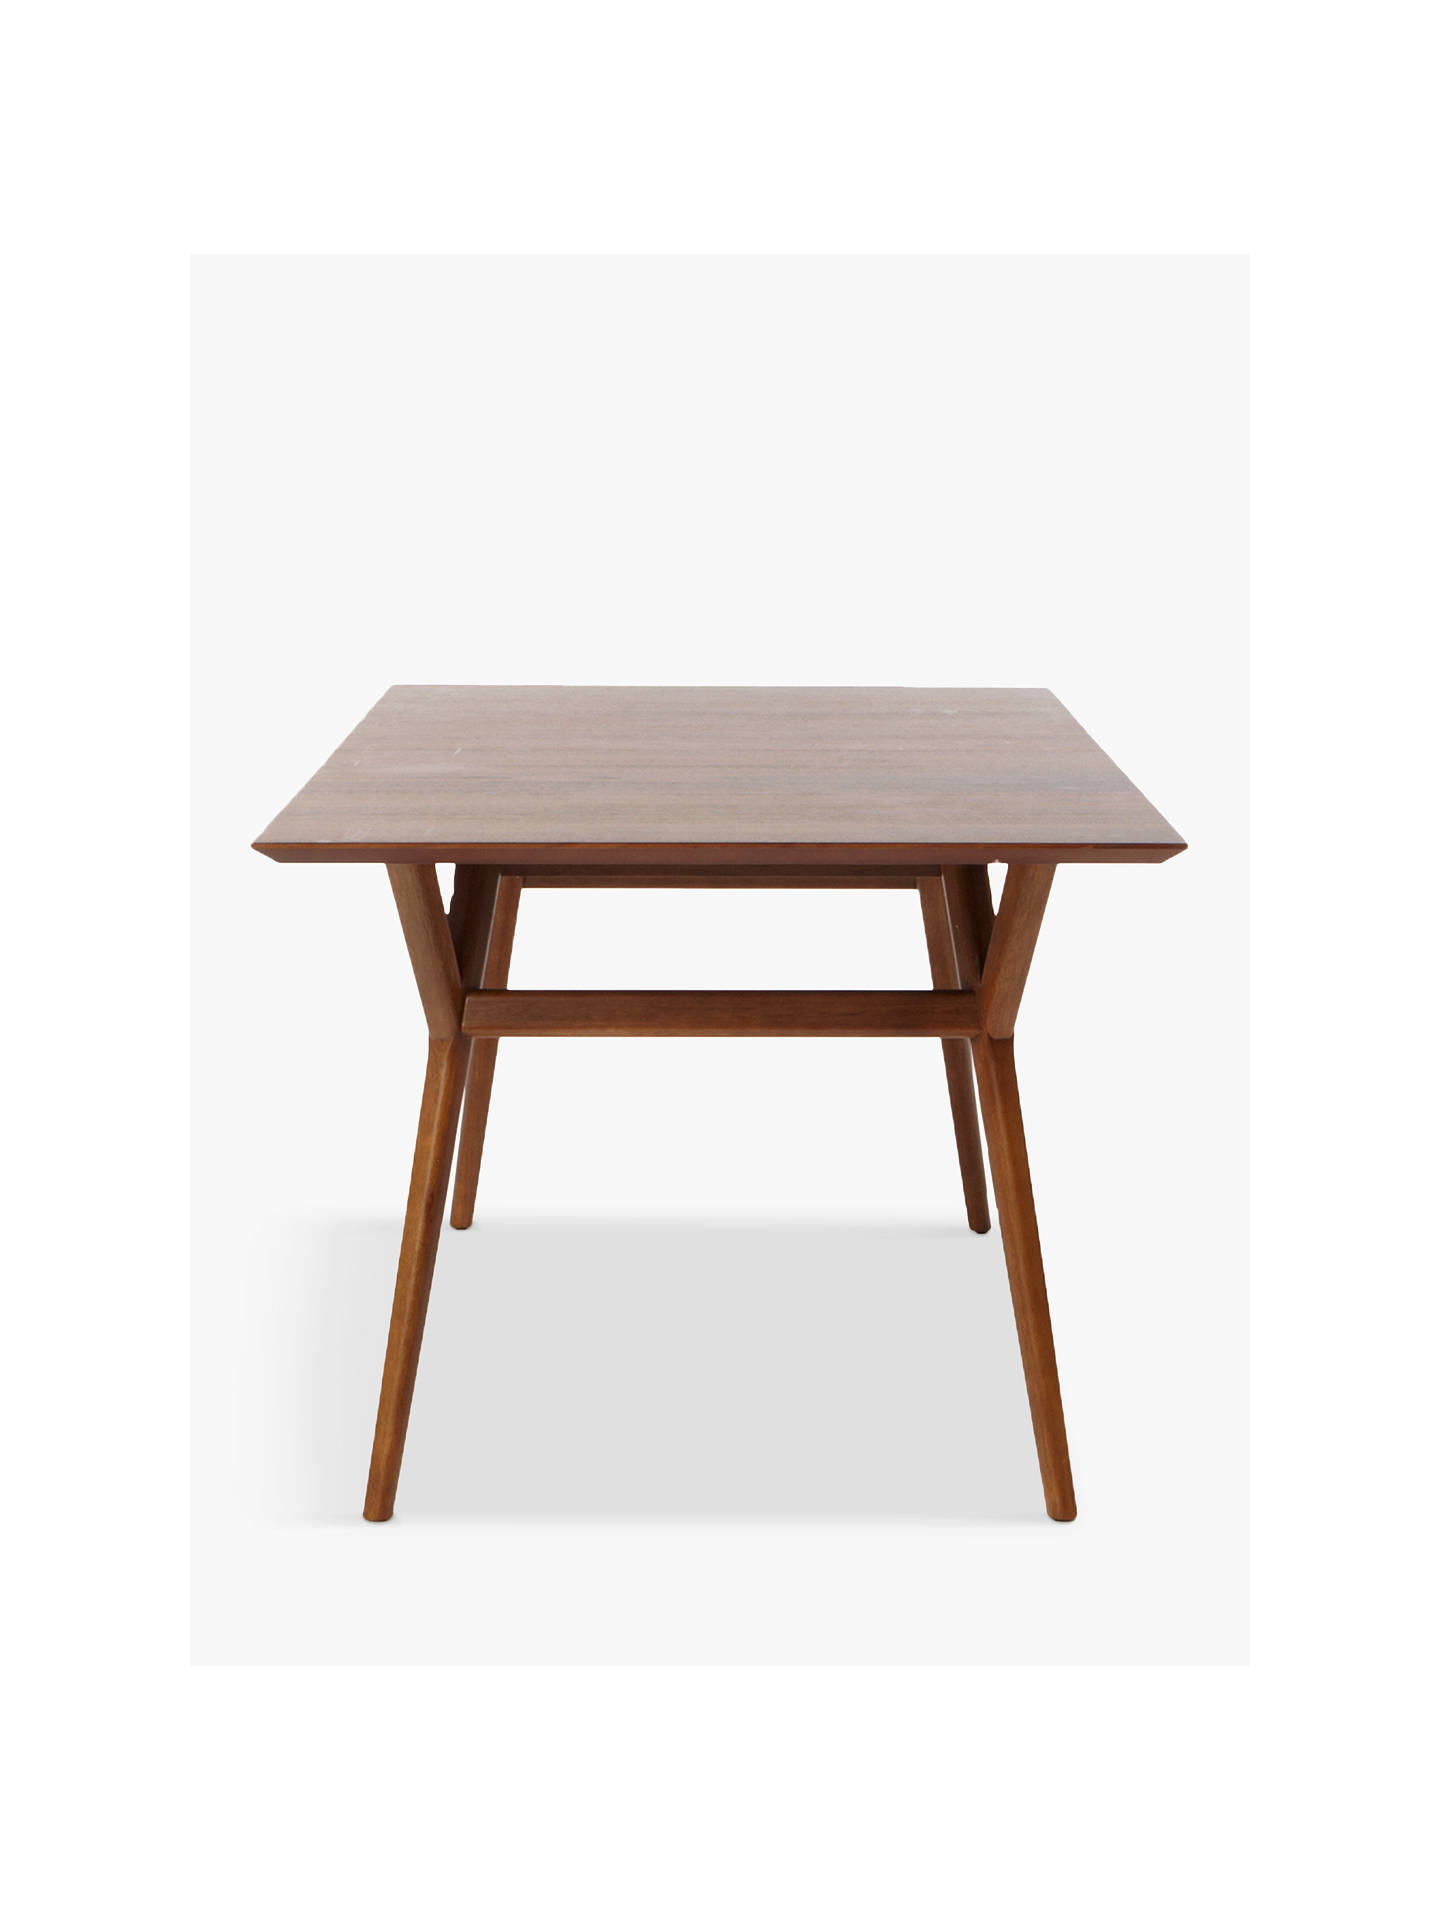 4a03cf7a79628 ... Buy west elm Mid-Century 6-8 Seater Extending Dining Table